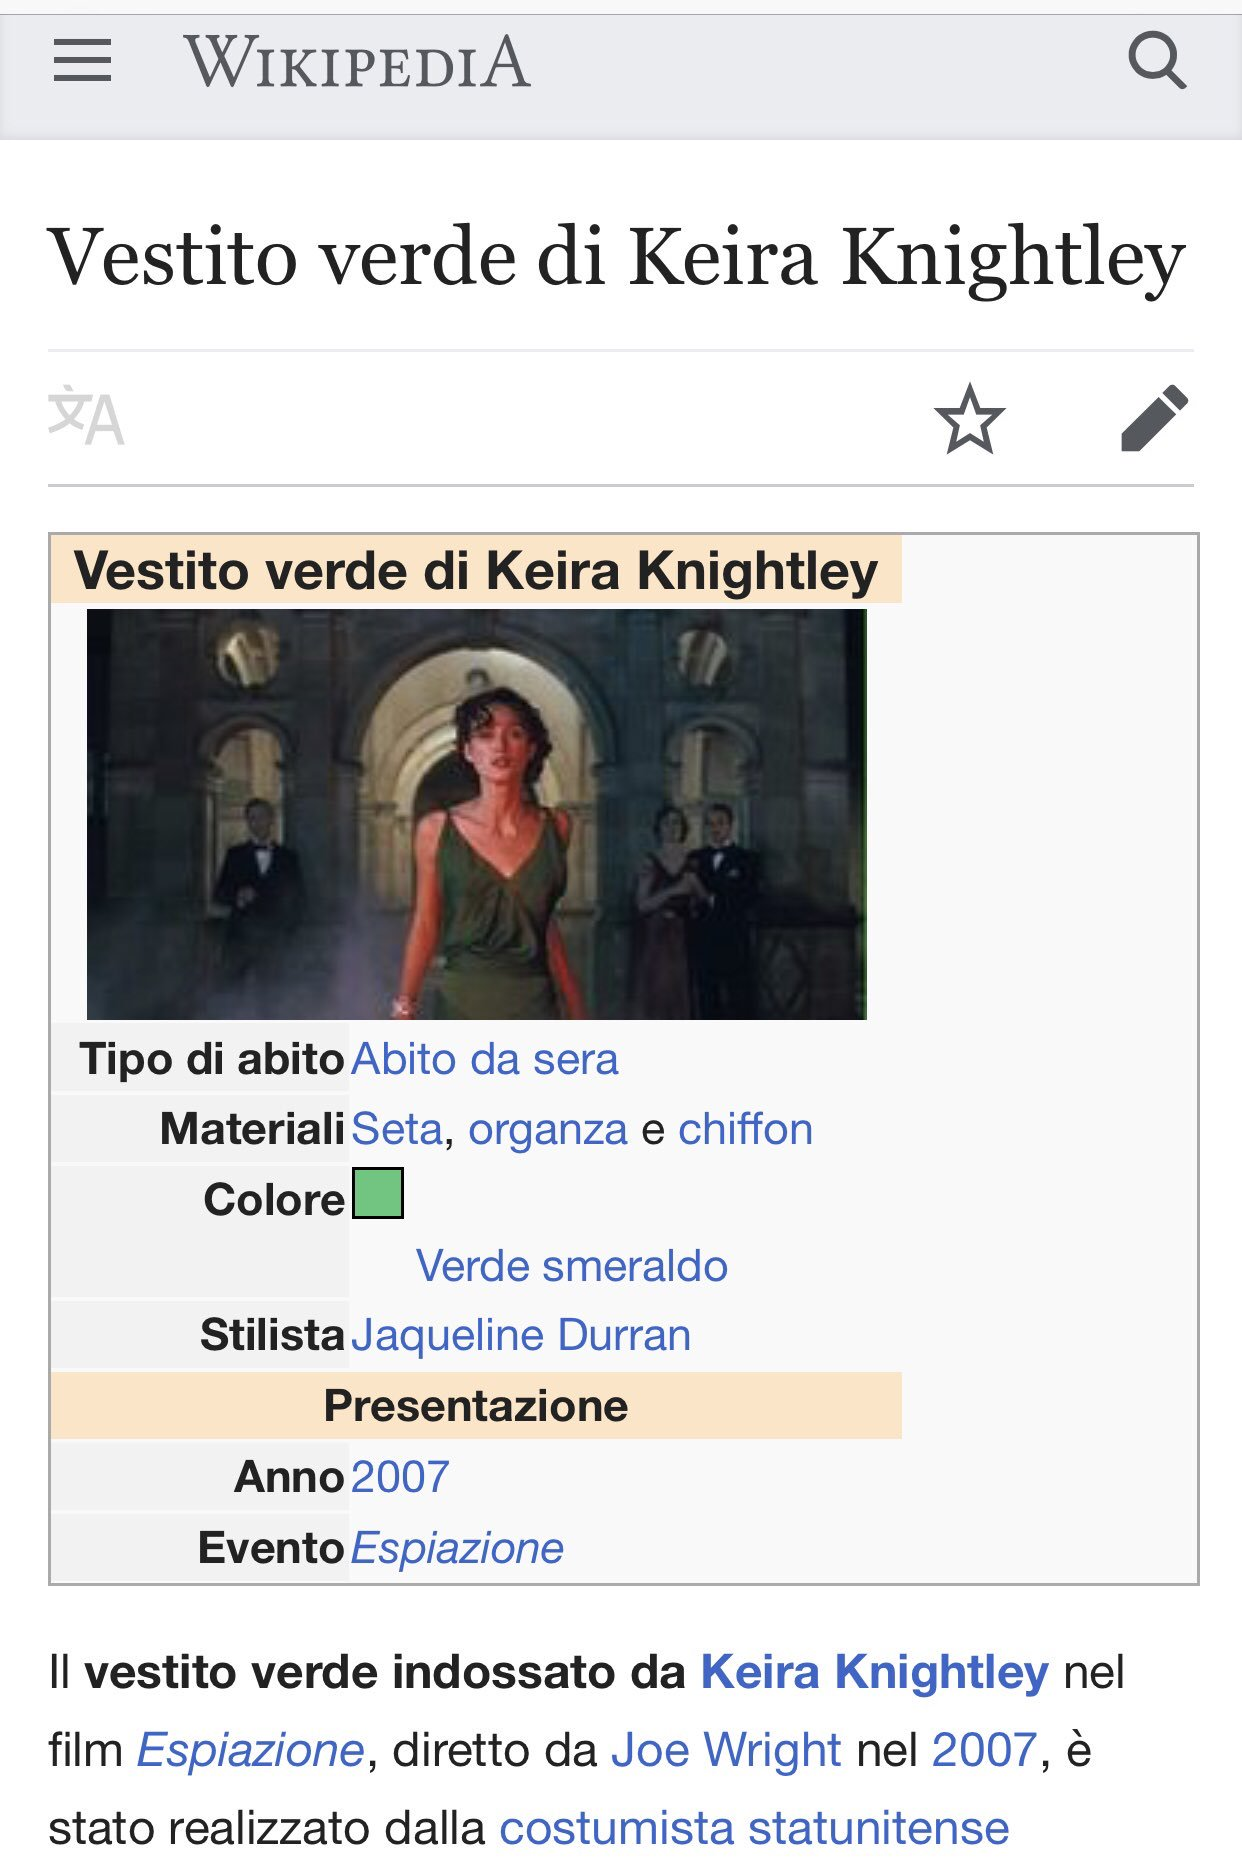 Abiti Da Sera Wikipedia.𝒱𝒶𝓁𝓈 On Twitter La Versione Italiana Di Wikipedia Vanta Un